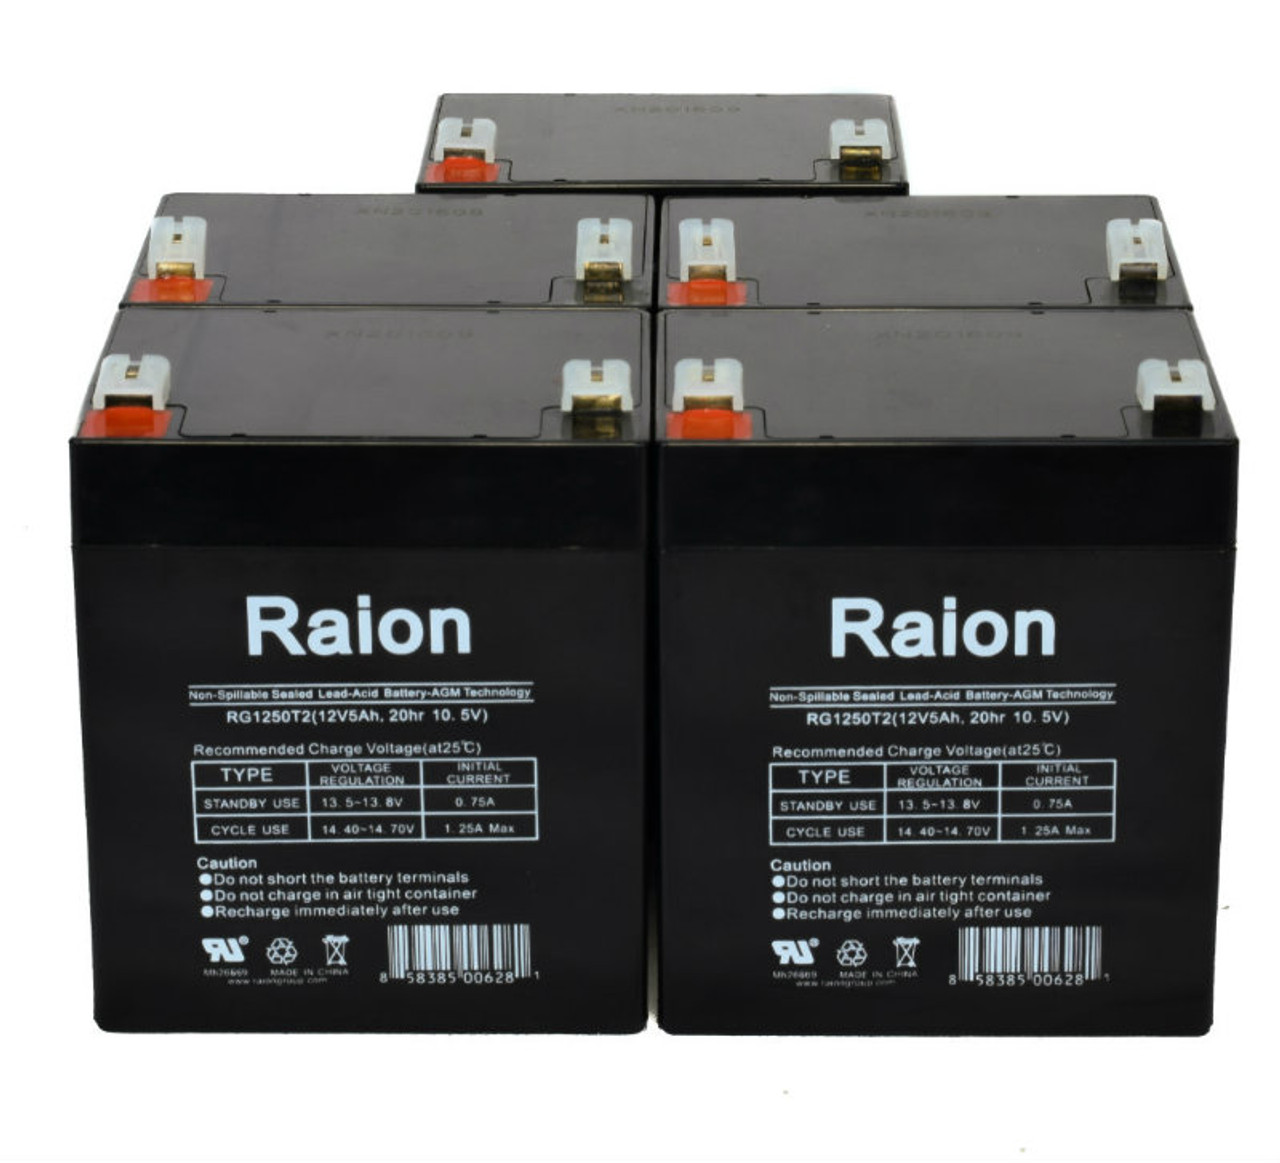 Raion Power RG1250T1 Replacement Battery for BSB DC12-5 - (5 Pack)